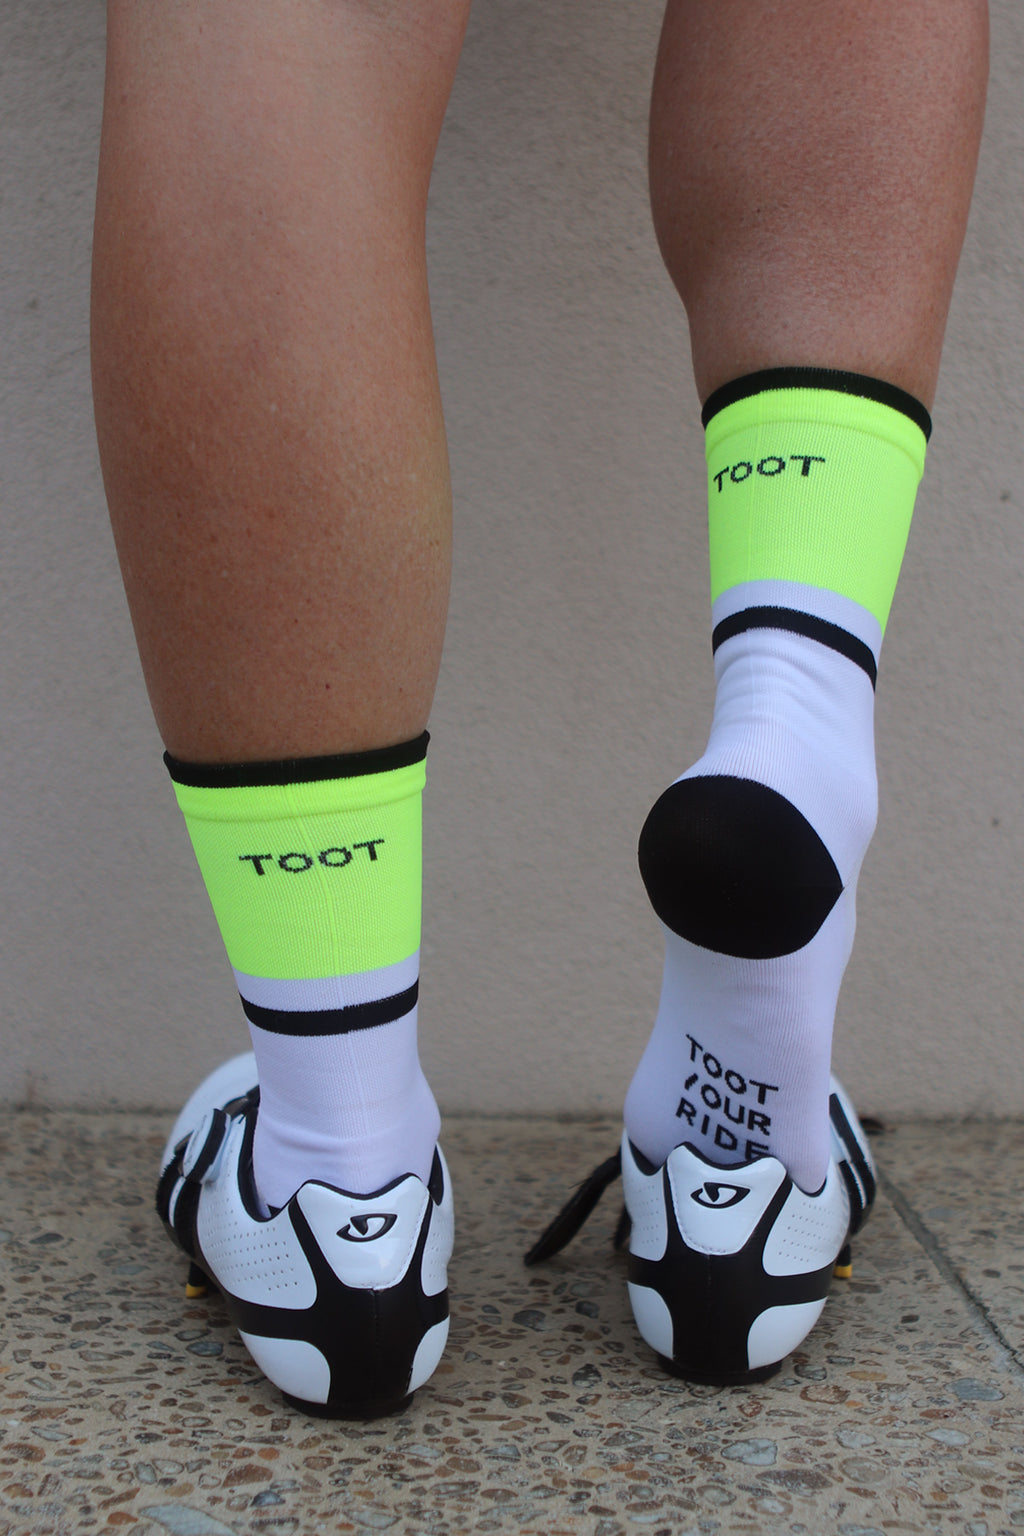 SUMMER WEIGHT CYCLING SOCKS - WHITE/FLURO/BLACK